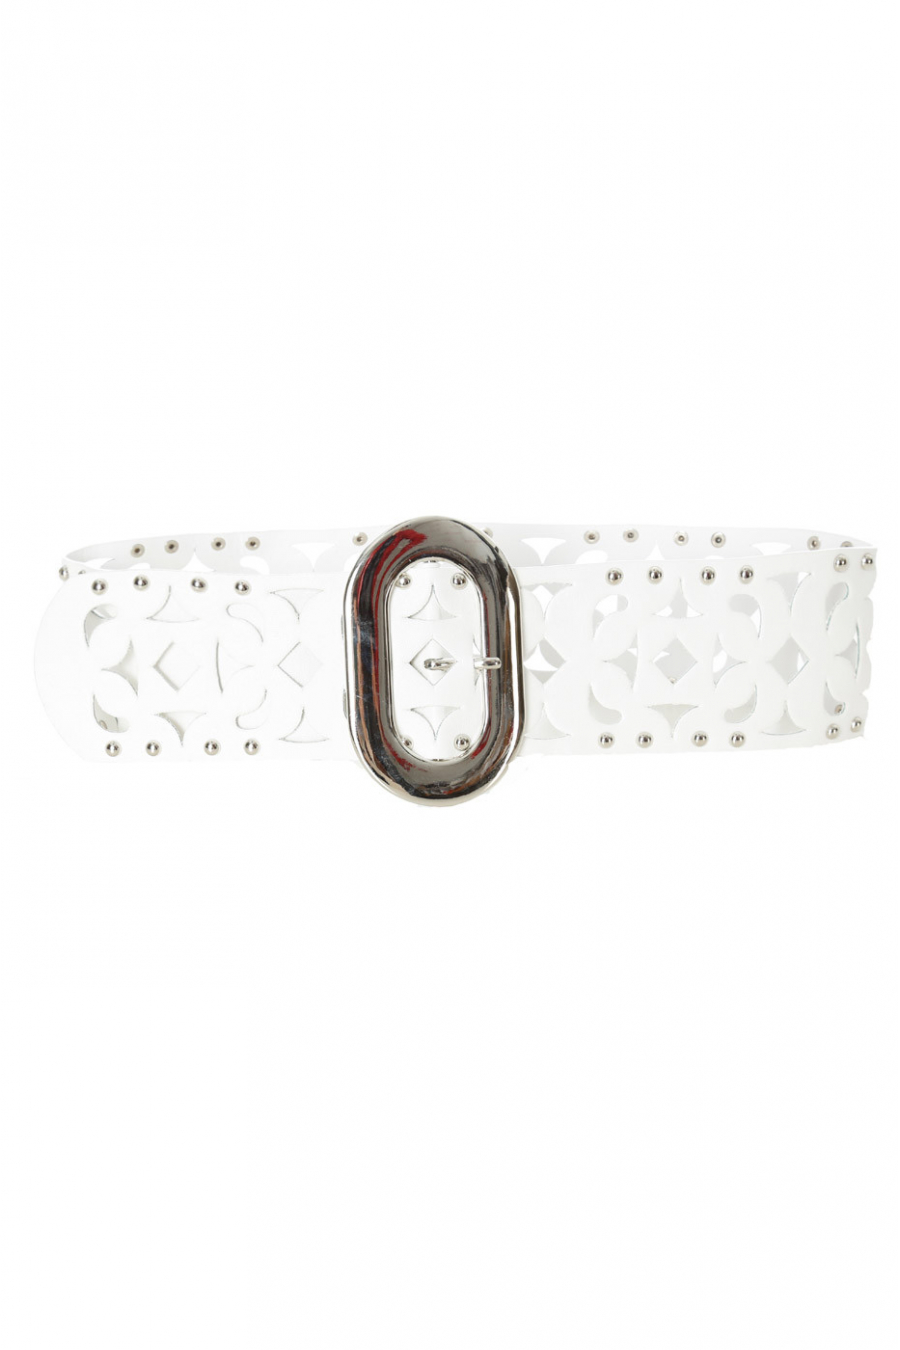 White belt with details and studs. SG-0421